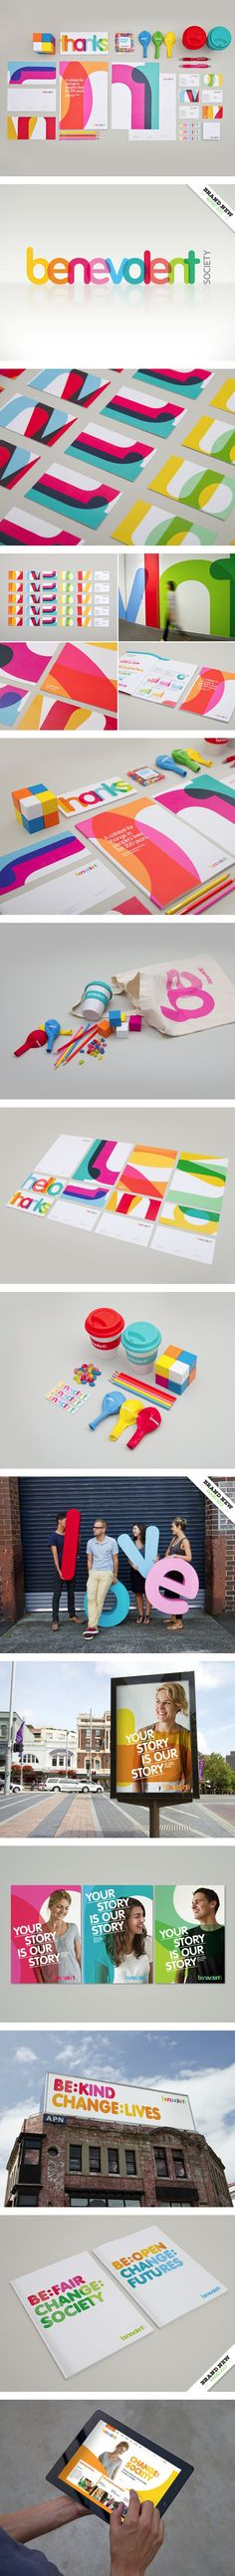 Benevolent Society - designed by Designworks #packaging #branding #marketing PD